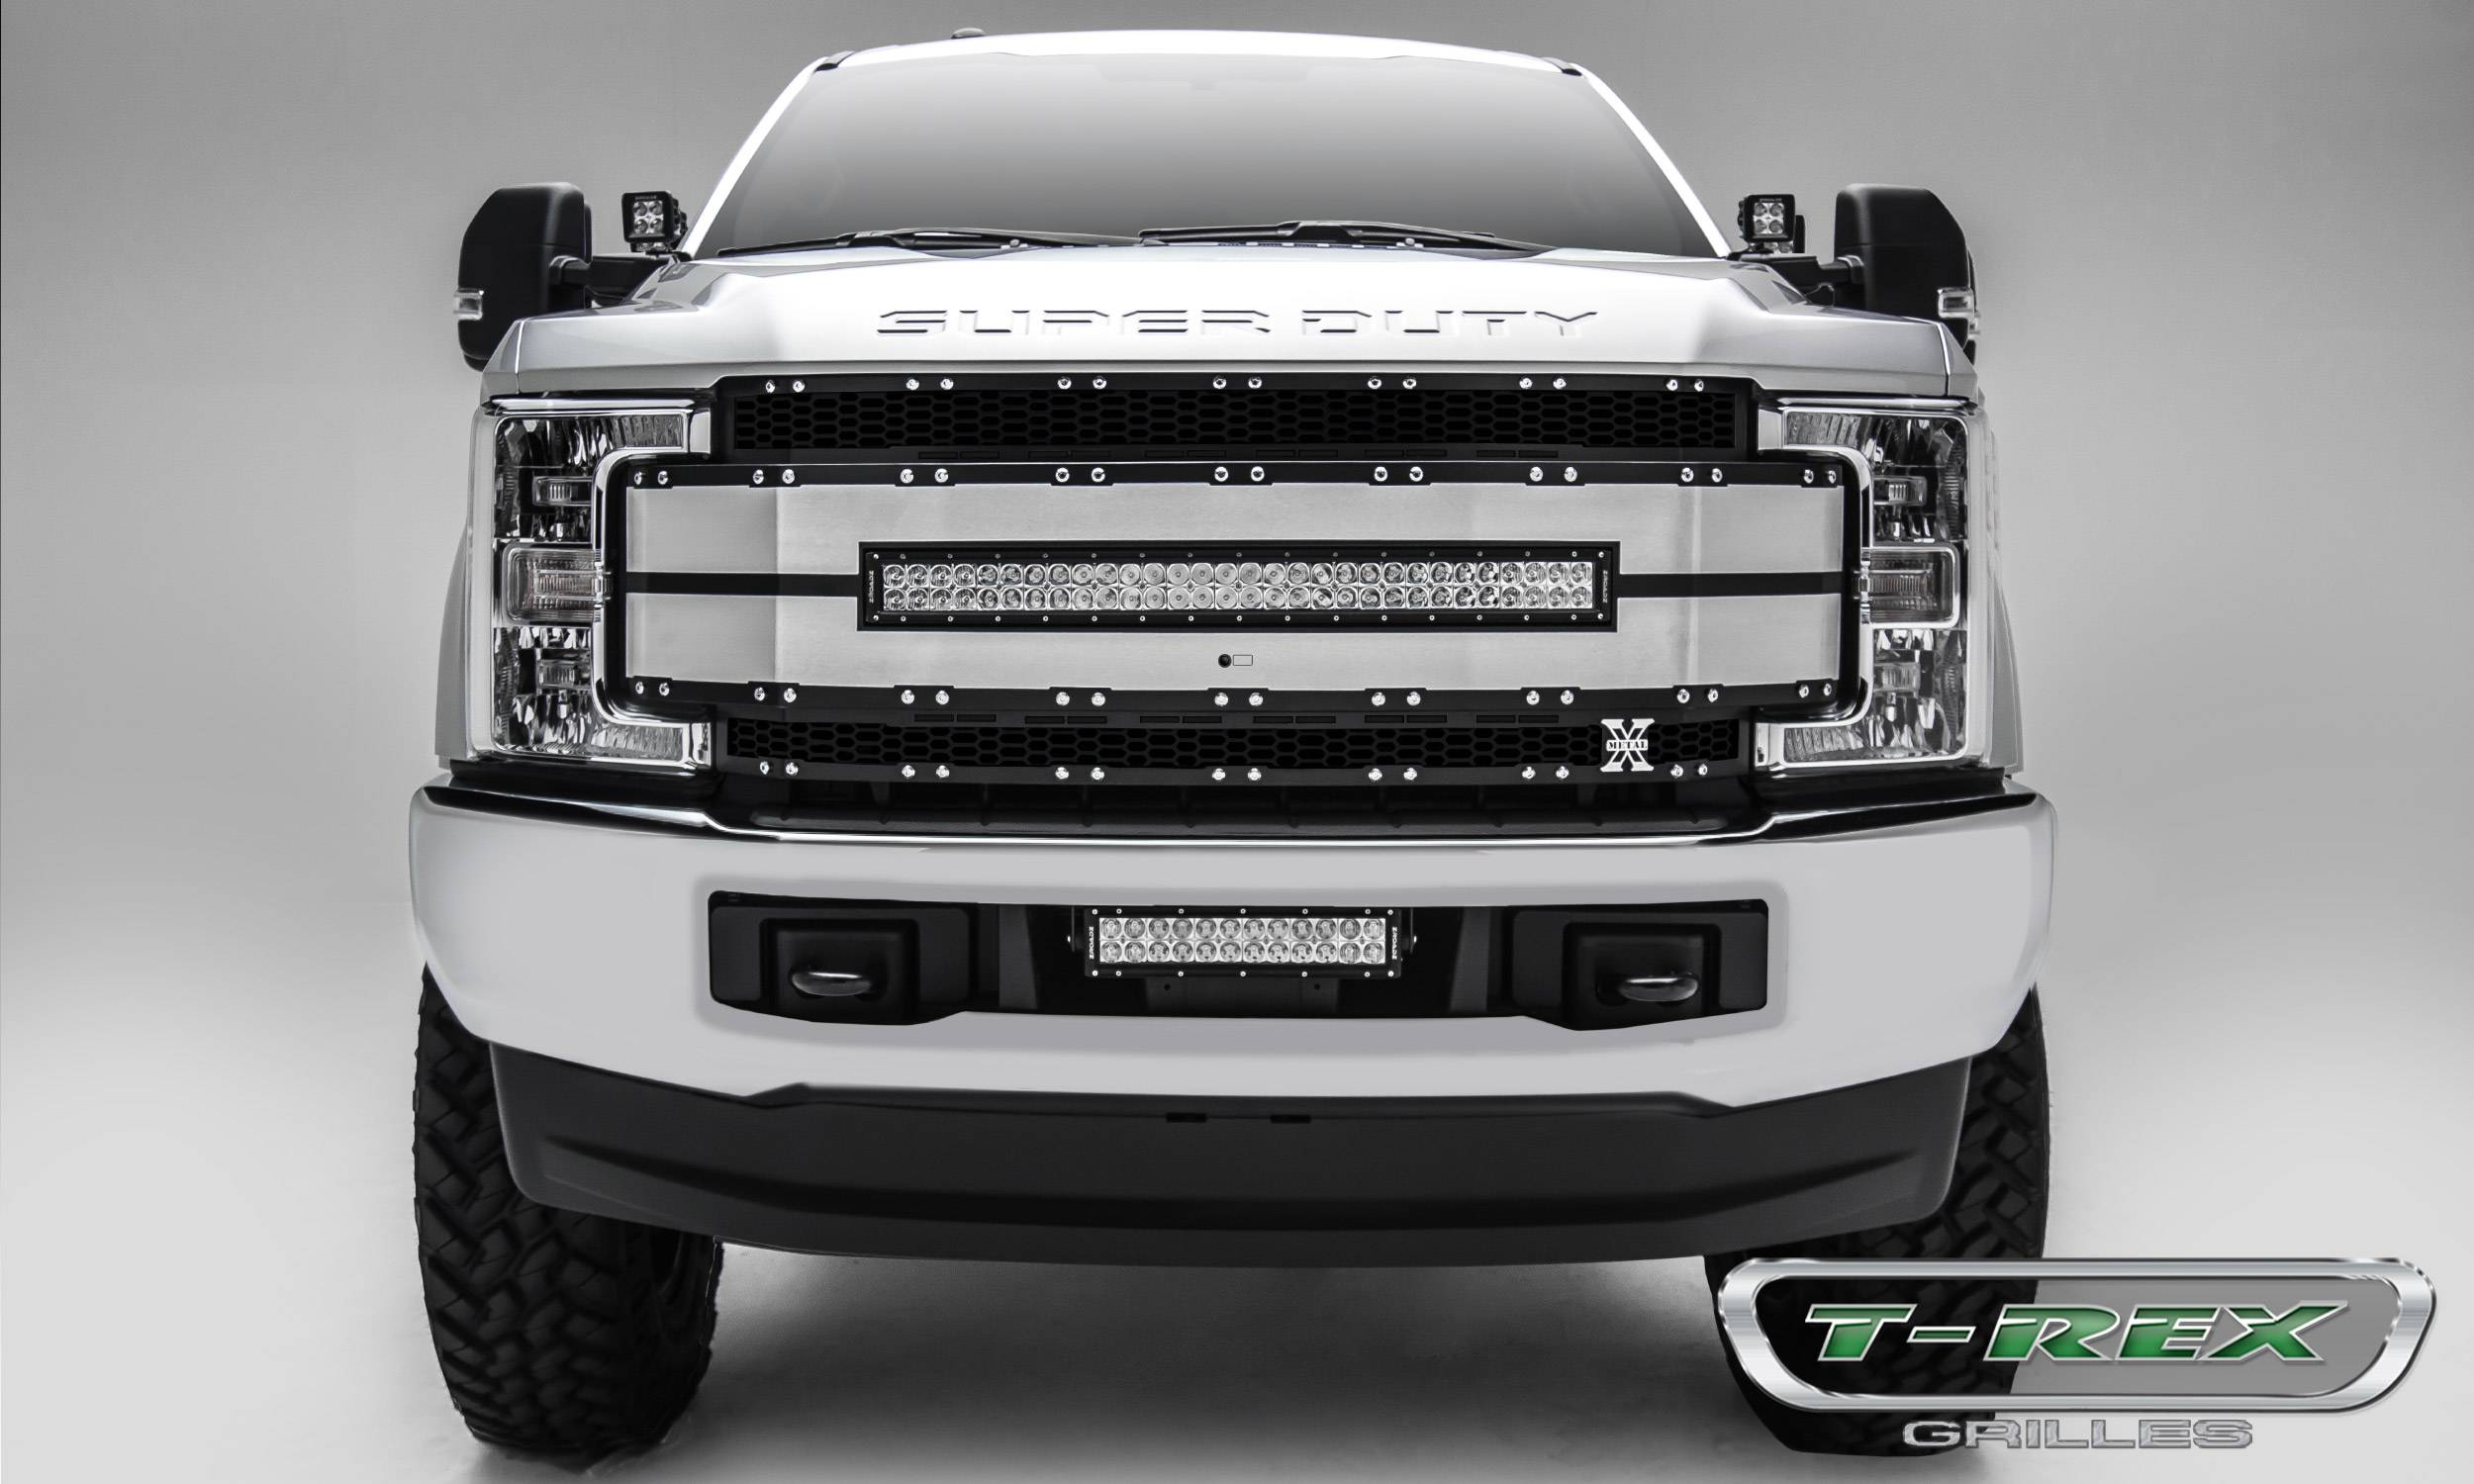 """T-REX Grilles - T-REX Ford F-250 / F-350 Super Duty w/ Camera Provision - TORCH-AL Series - Main Replacement Grille - (1) 30"""" LED Light Bar  - Pt # 6315493"""